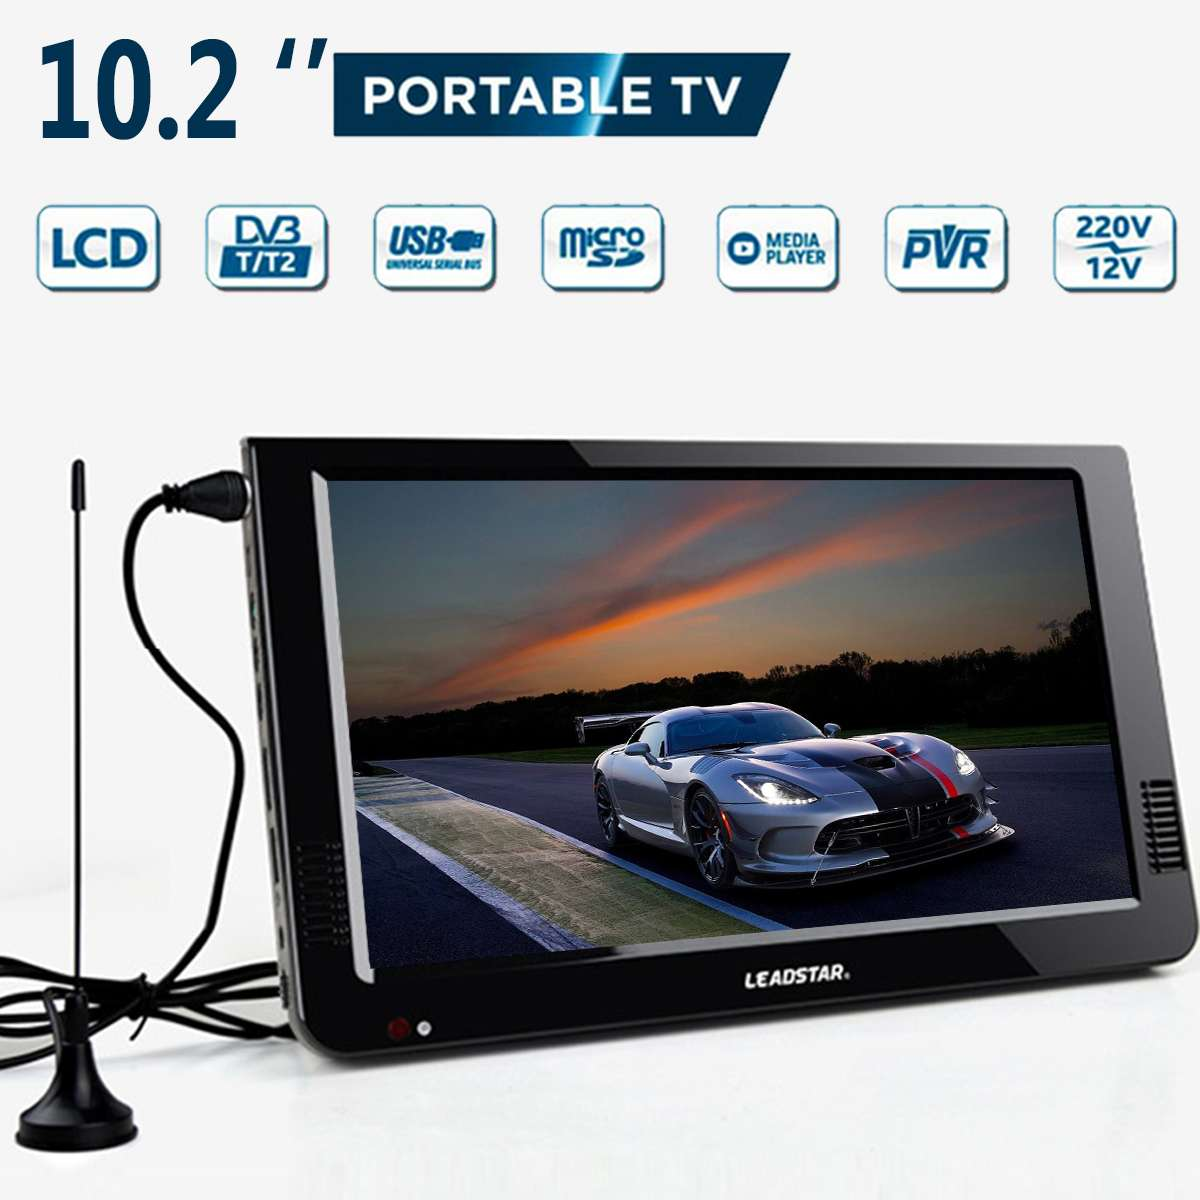 10 2 Inch 1080P PVR 12V Portable DVB-T DVB-T2 TFT LED HD TV Television Digital Analog AC DC